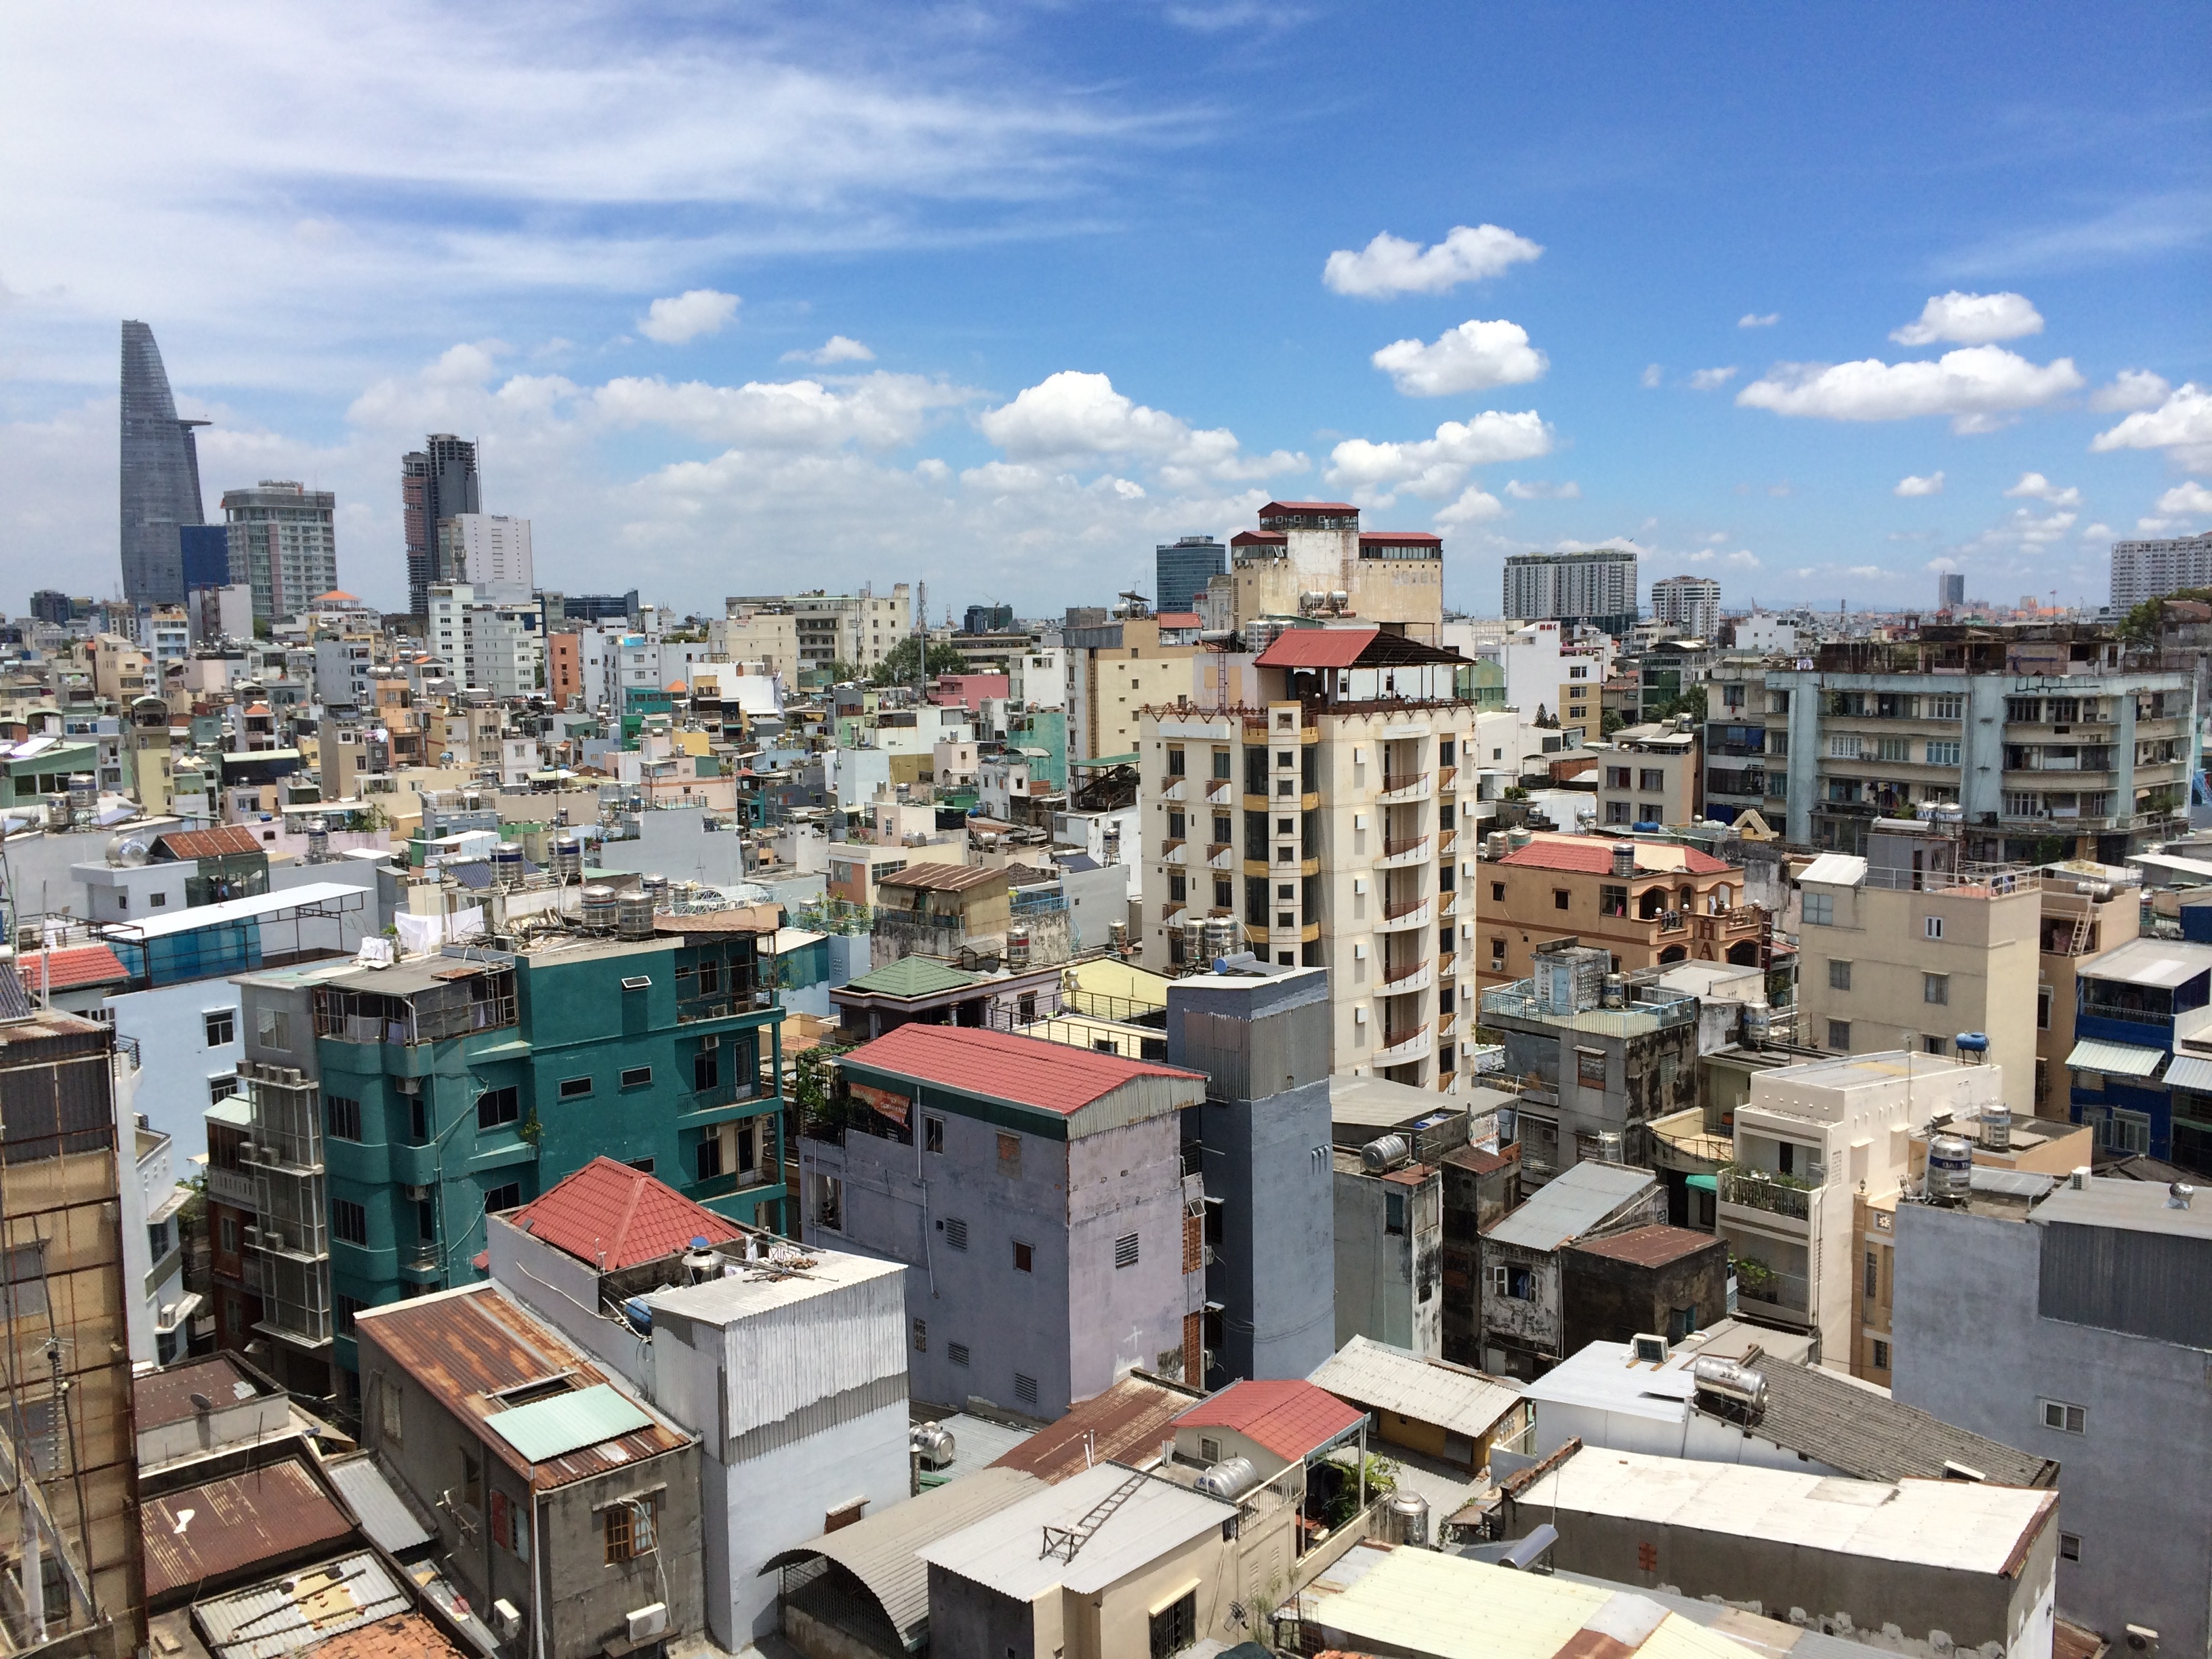 48 Hours in Ho Chi Minh City (Saigon) - Eat Well, Explore Often